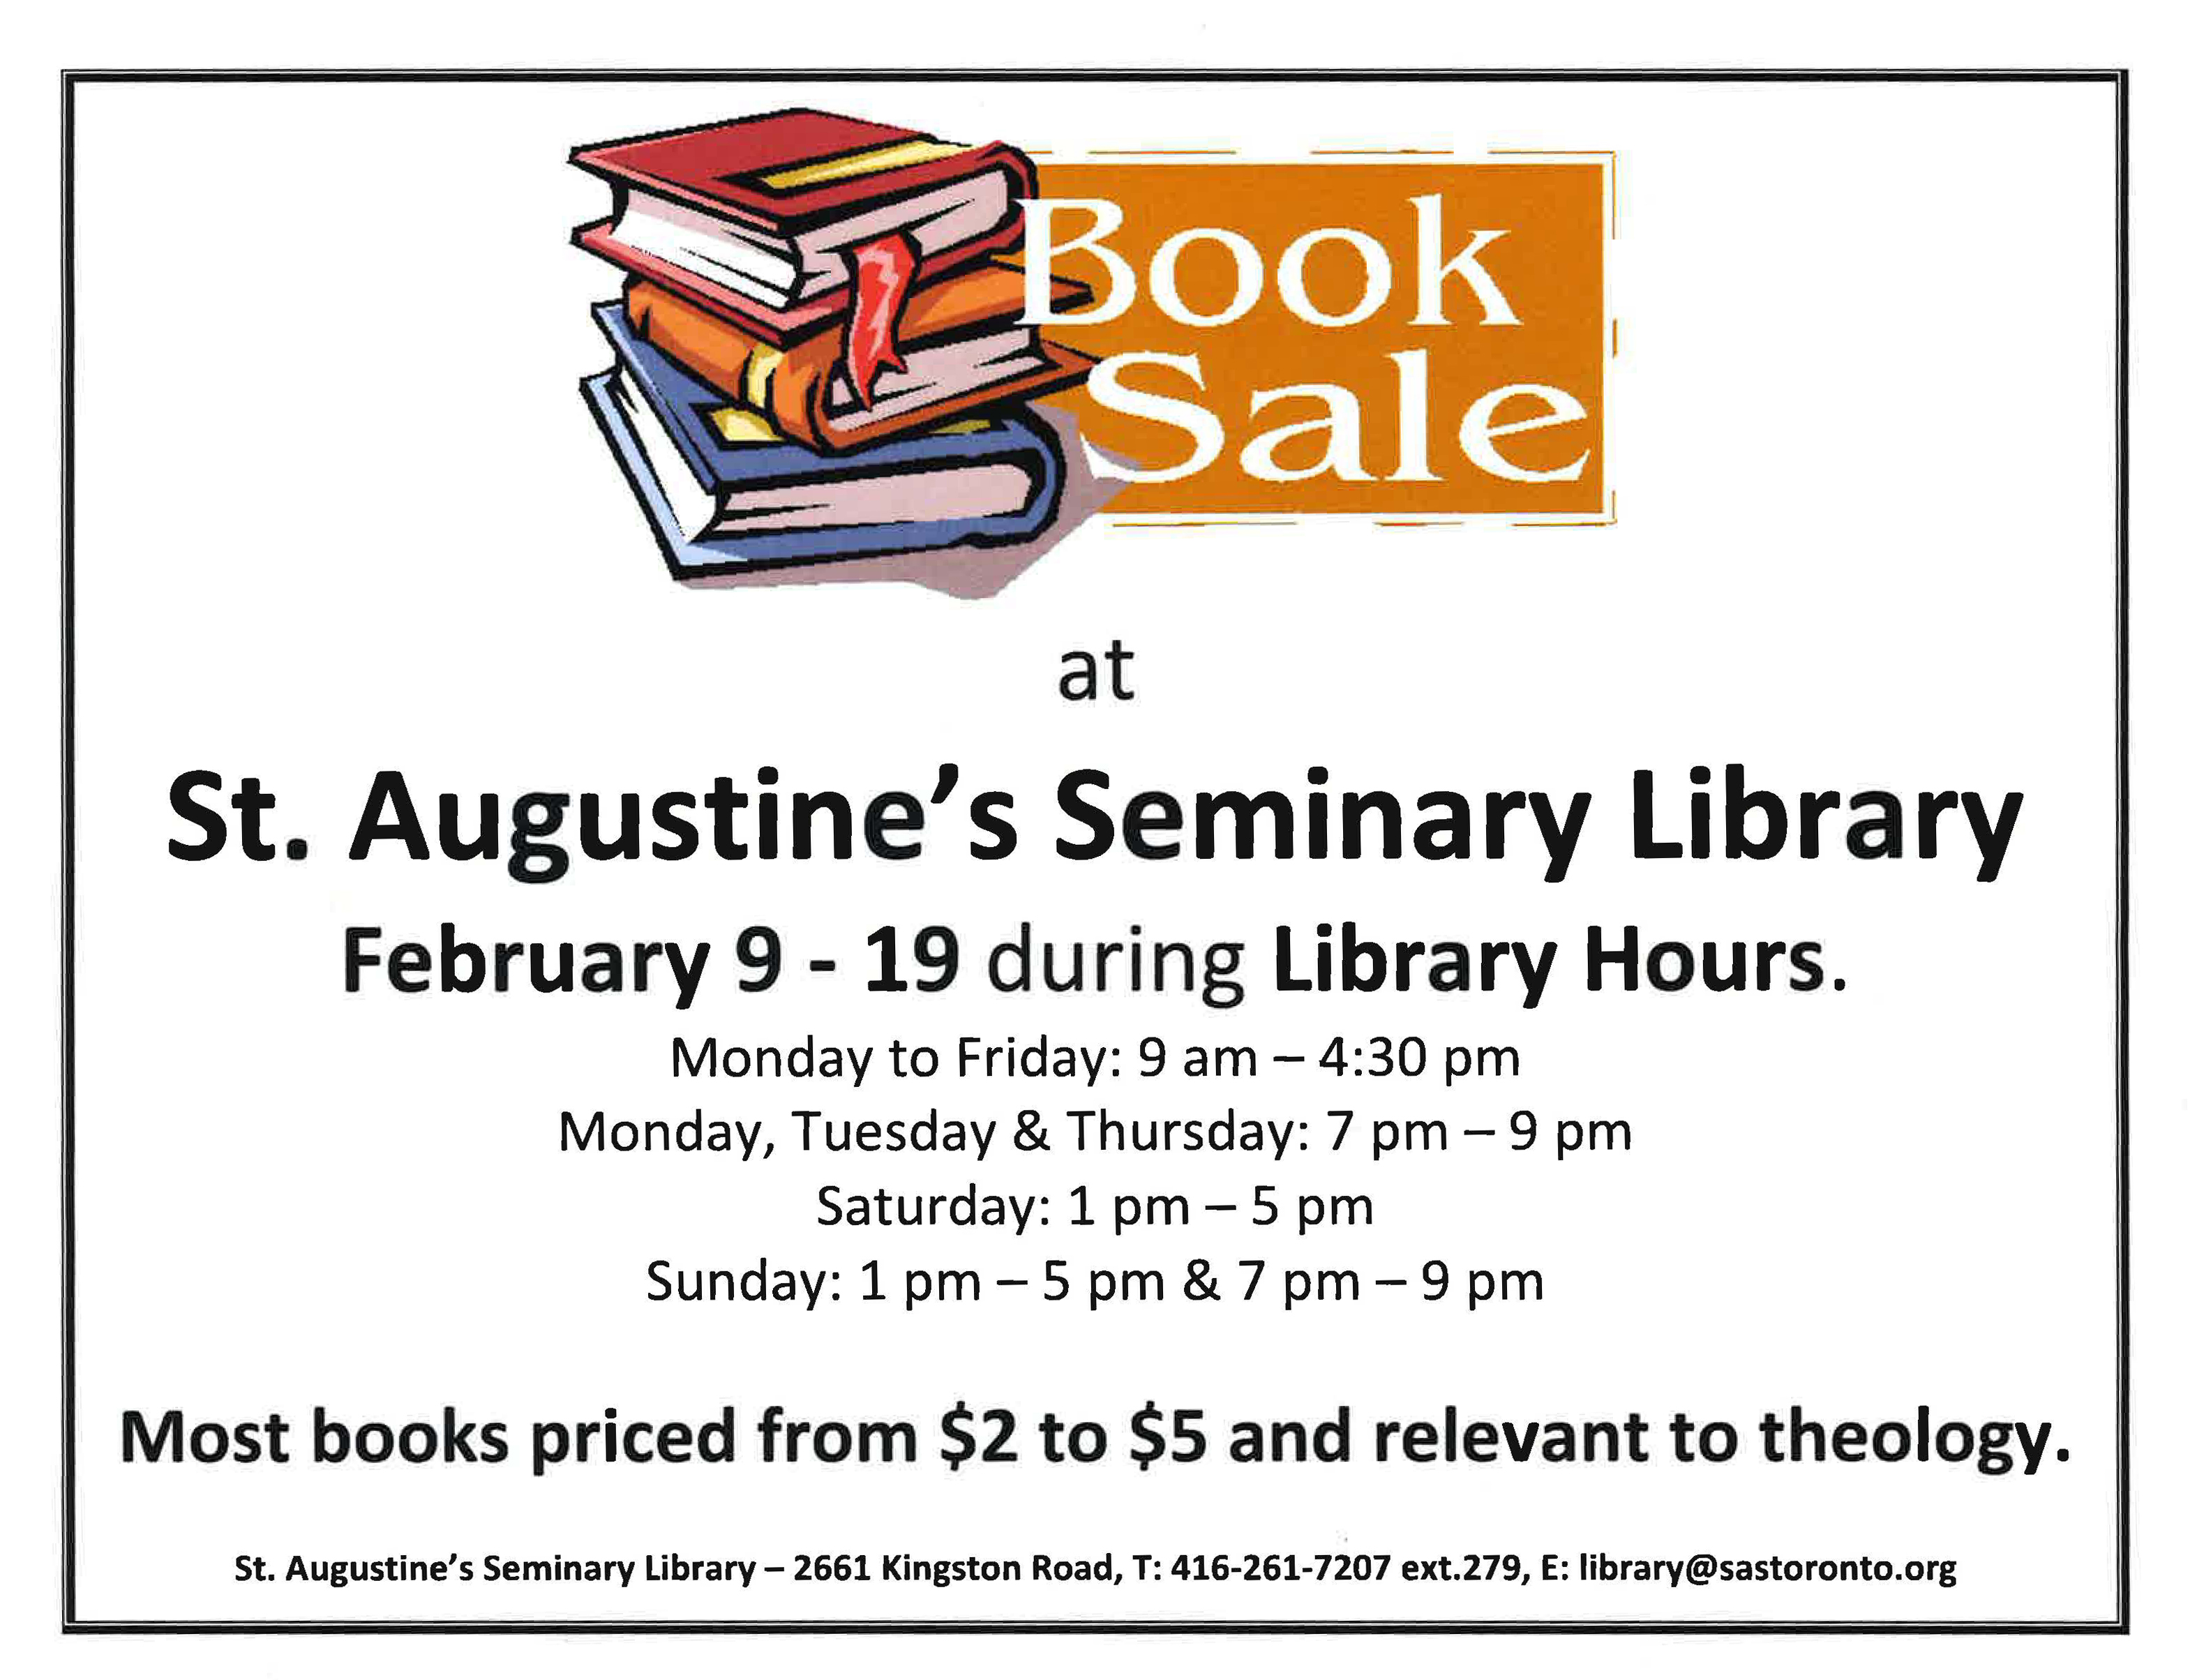 St. Augustine's Seminary Library Book Sale